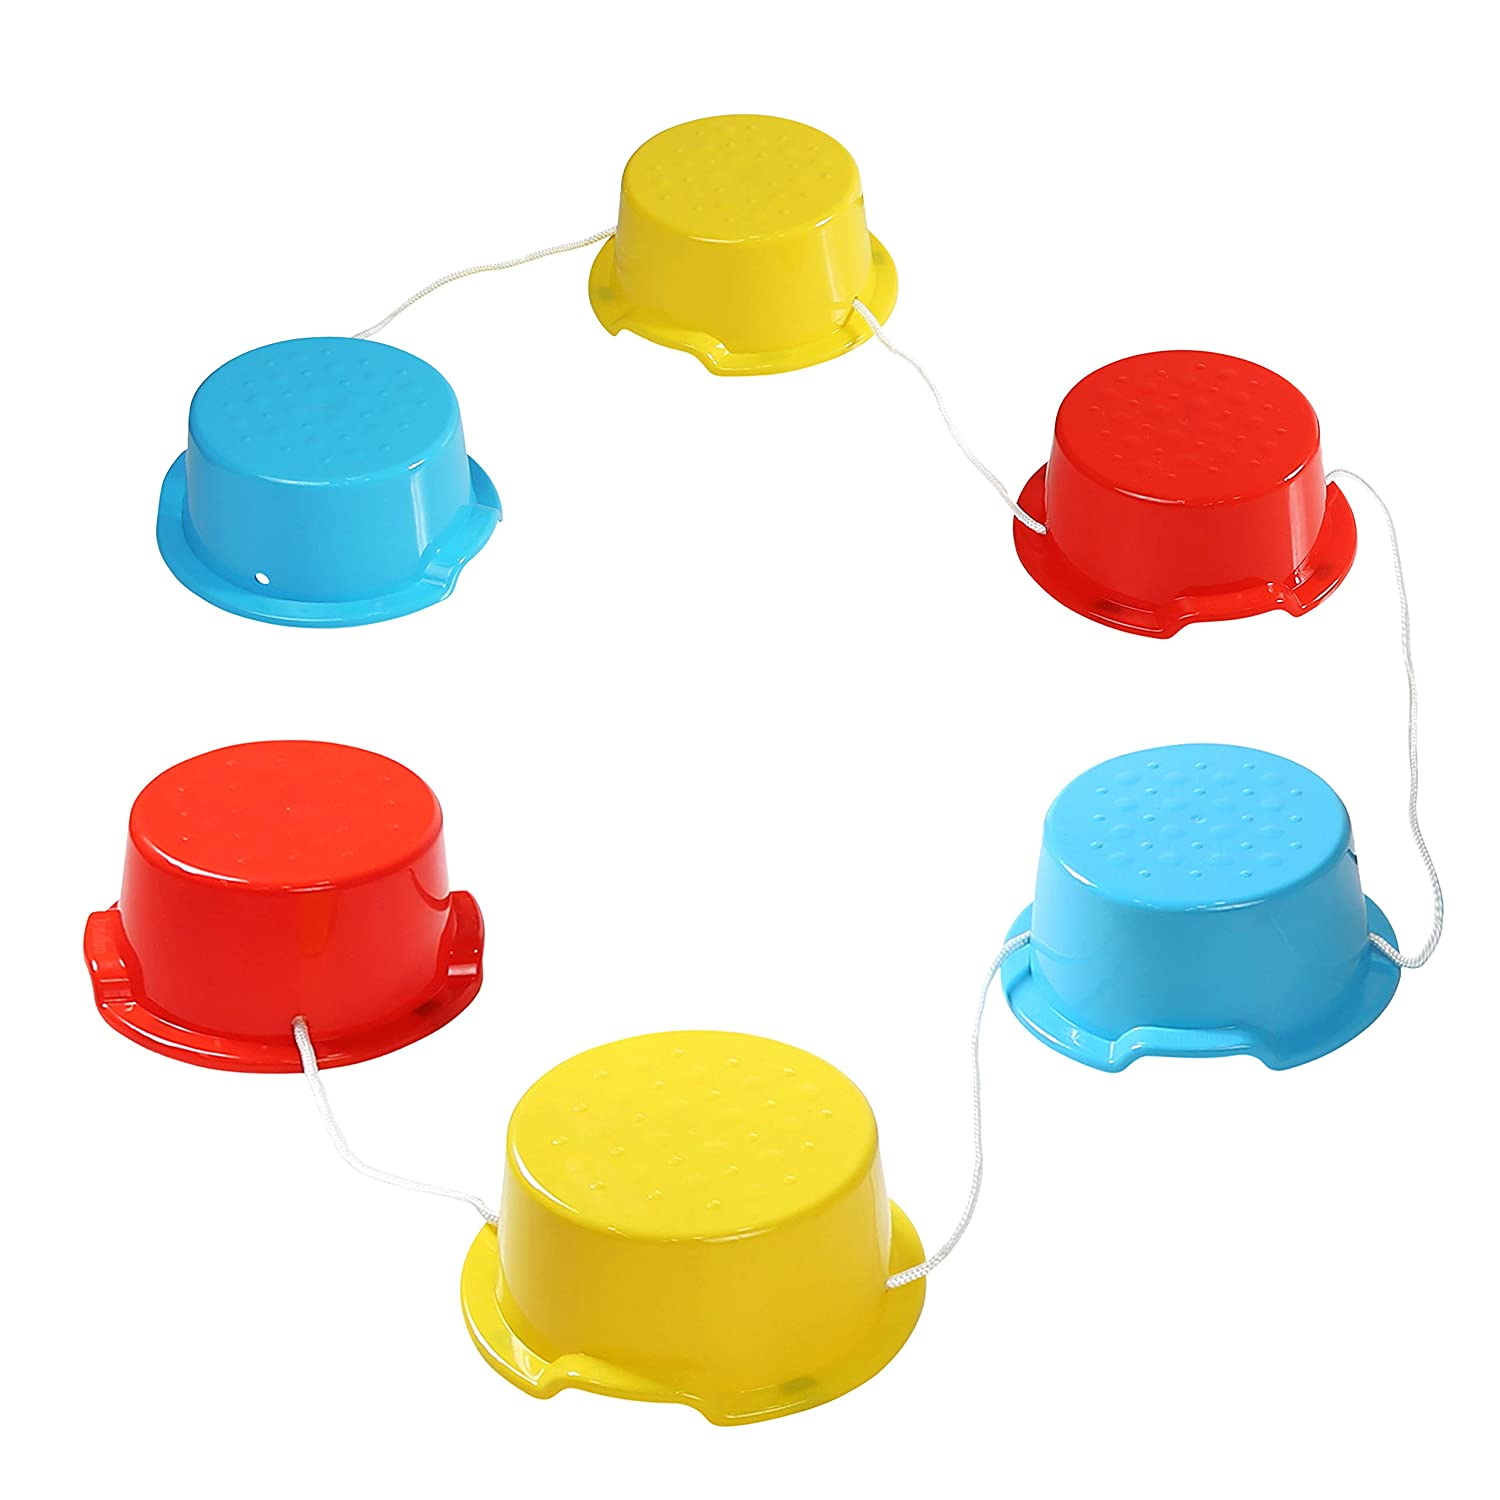 Milliard Kid's Stepping Balance Buckets 6-Pack with Blue, Red, Yellow with Anti-Skid Pads on Bottom, Stackable. for Gross Motor, Coordination, Exercise Fun, Balancing. Great for Home and School use.